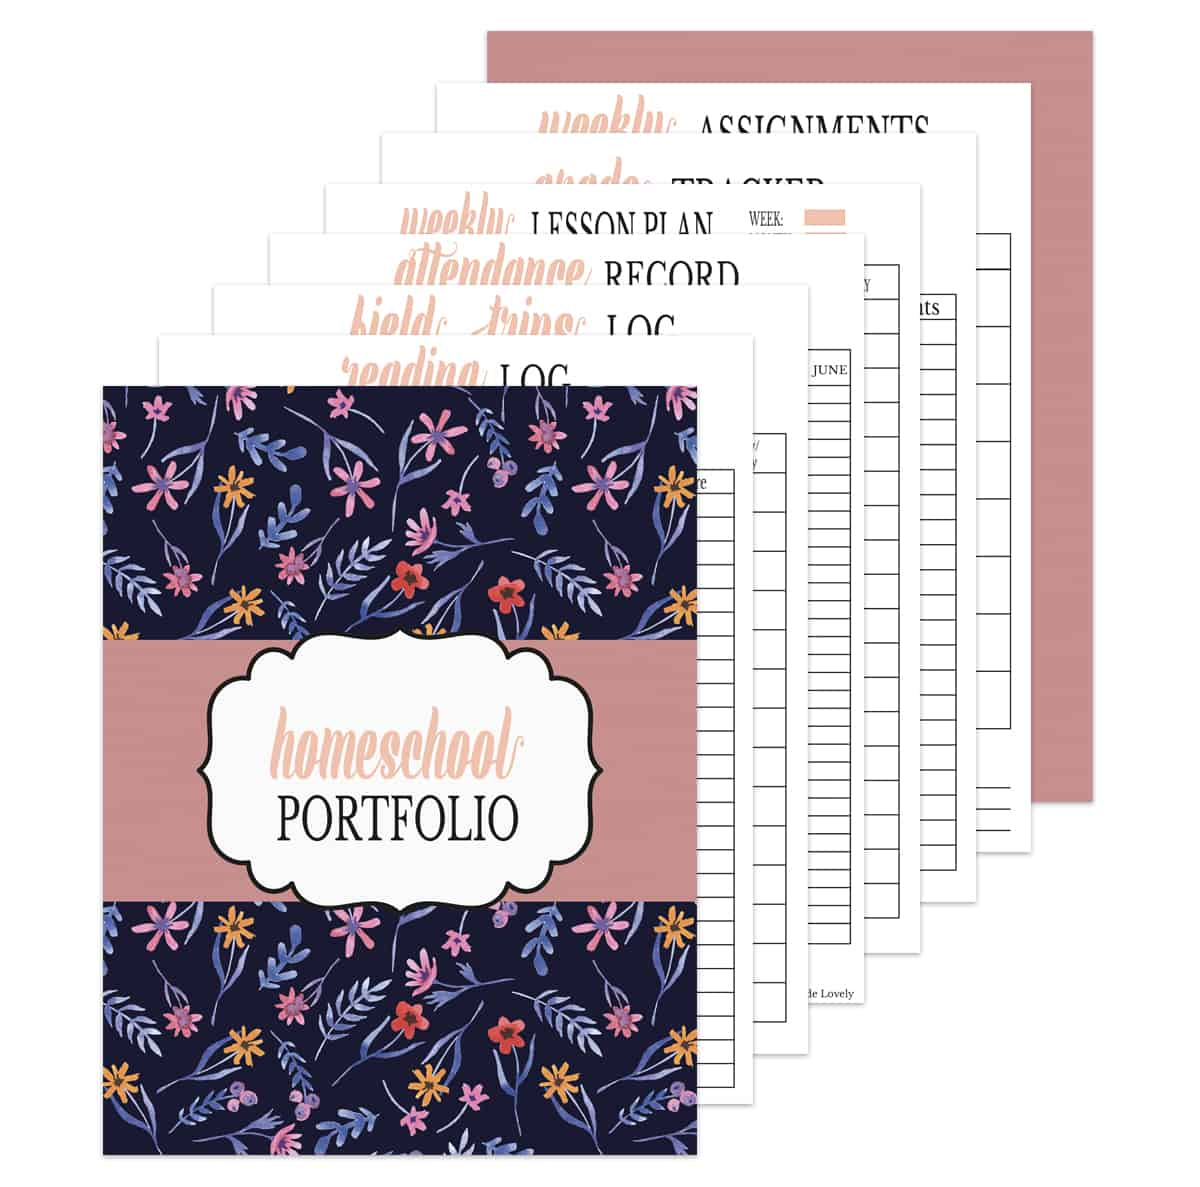 photo regarding Free Printable Homeschool Record Keeping Forms known as Homeschool Background Holding - How towards Build a Portfolio within 5